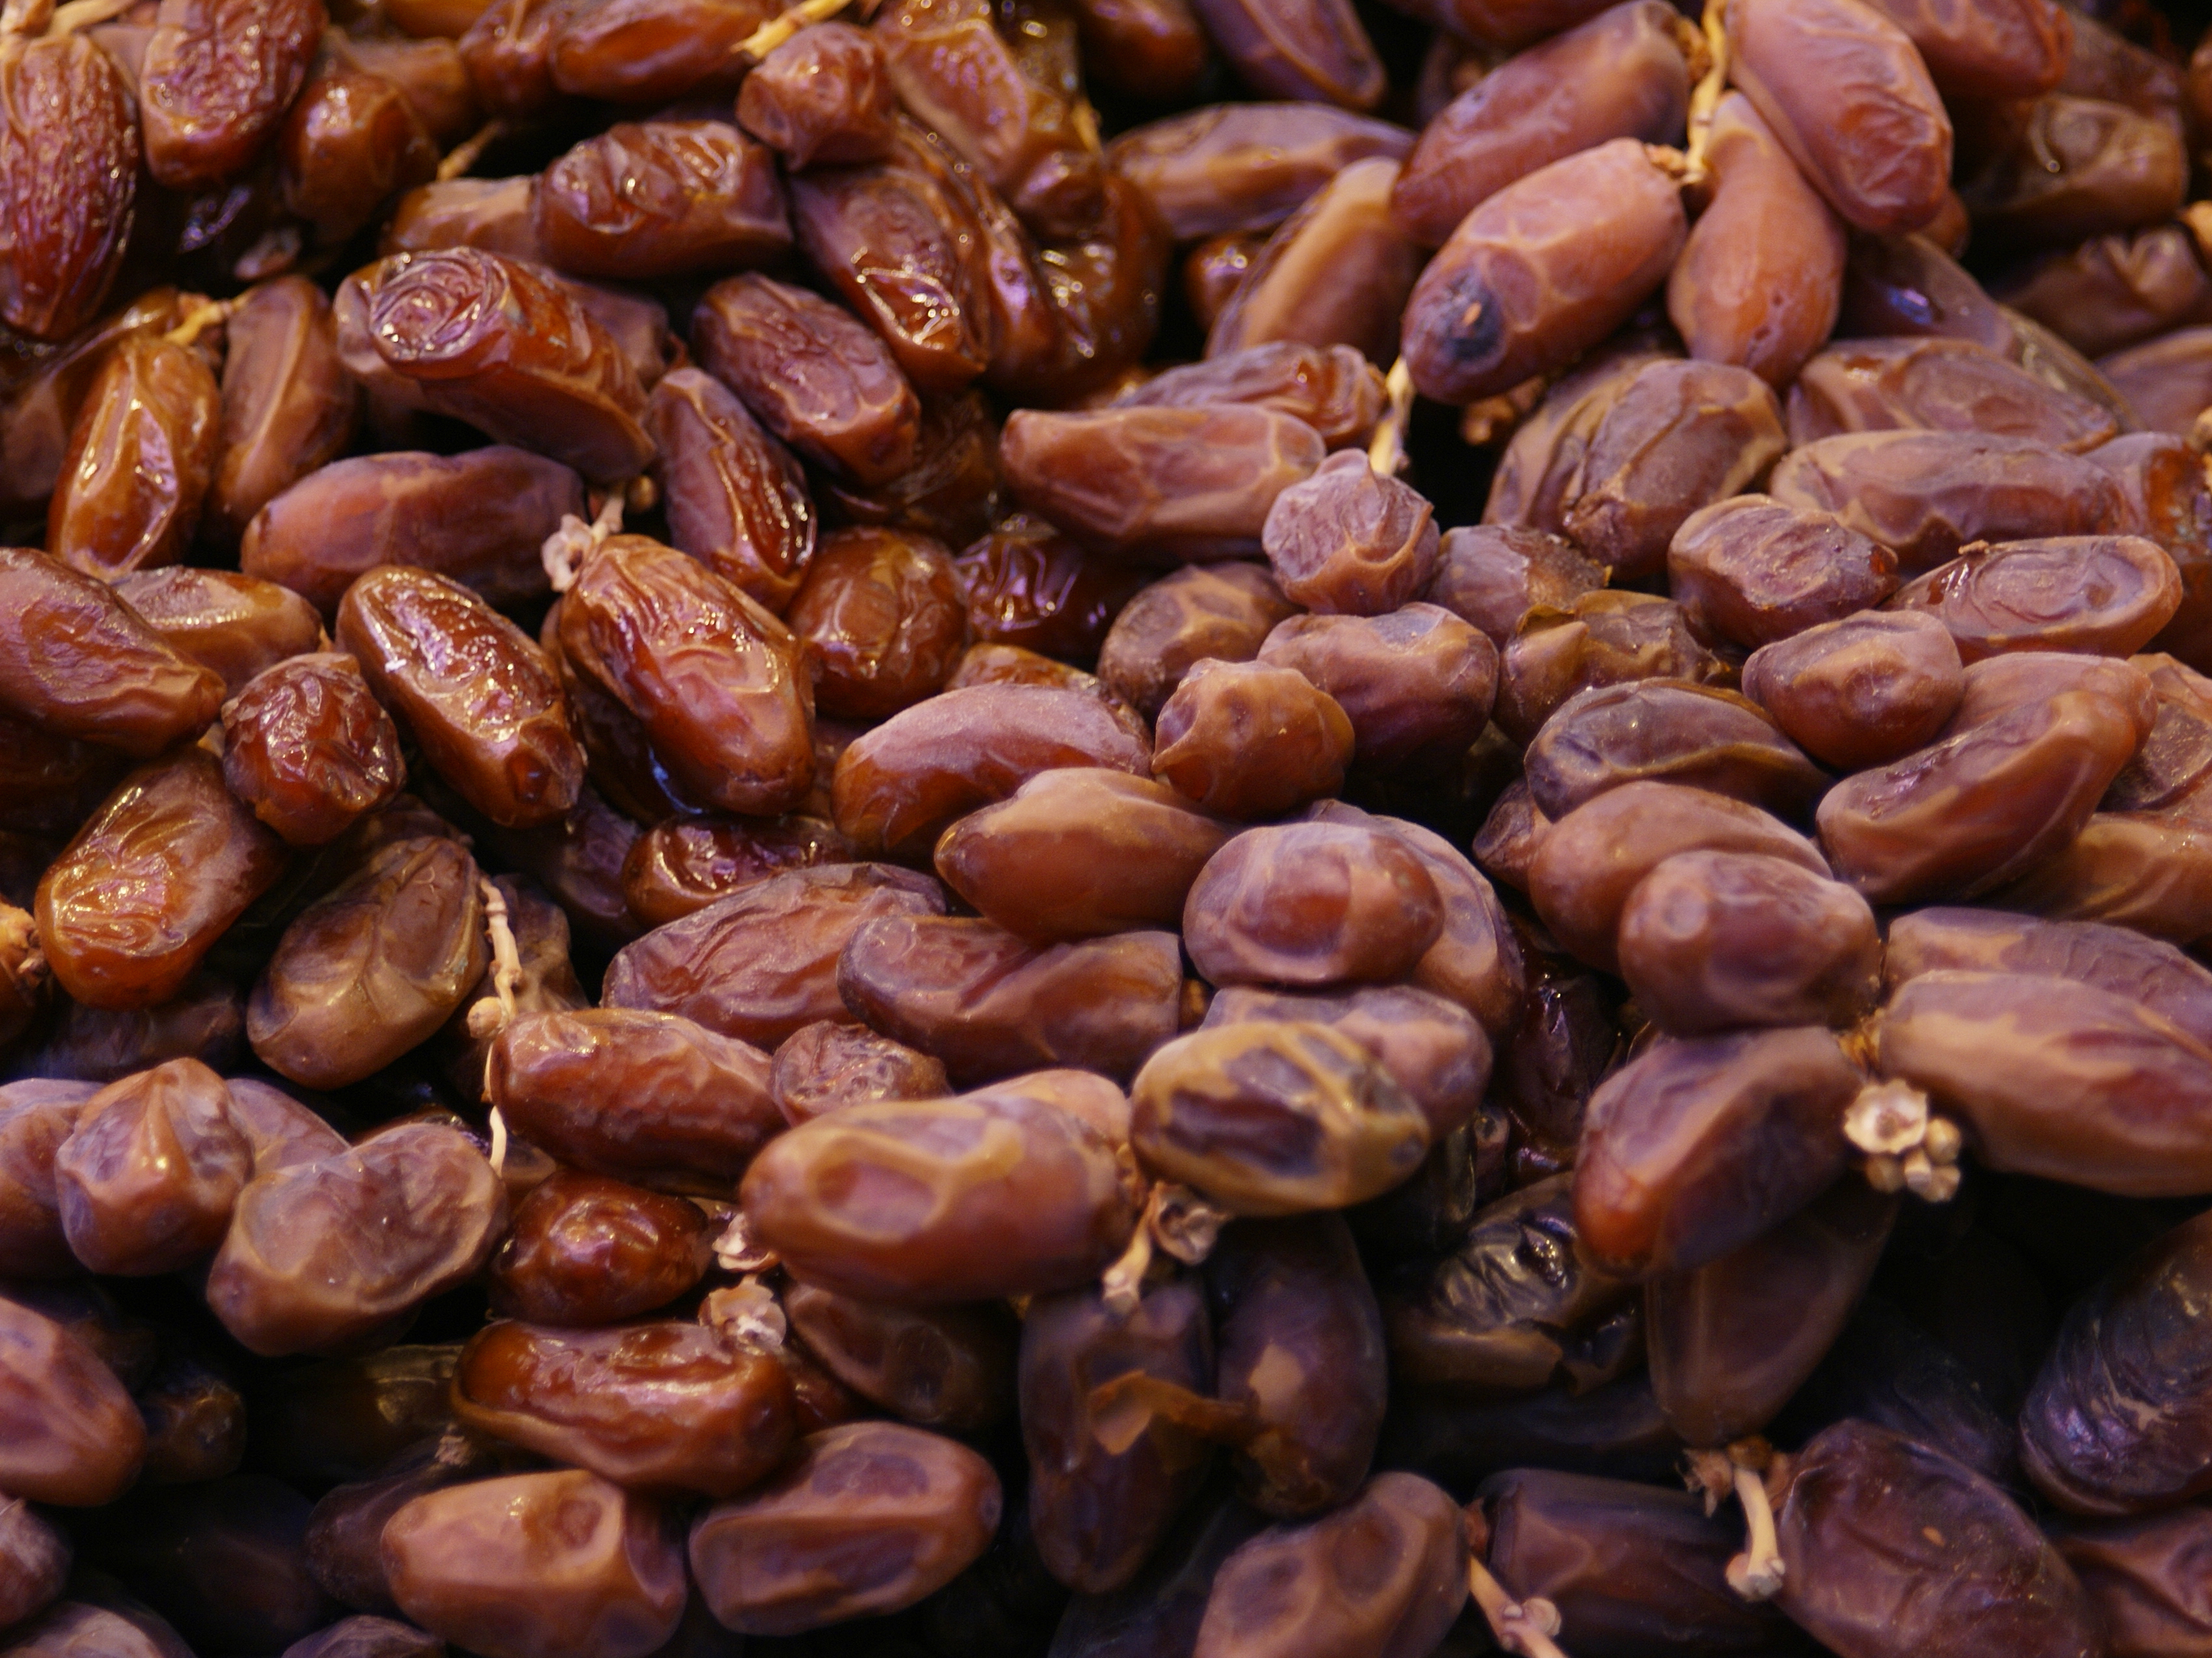 ... .com/ .. Welcome to Soni's Kitchen: Dates: The wonder fruit of Arabia